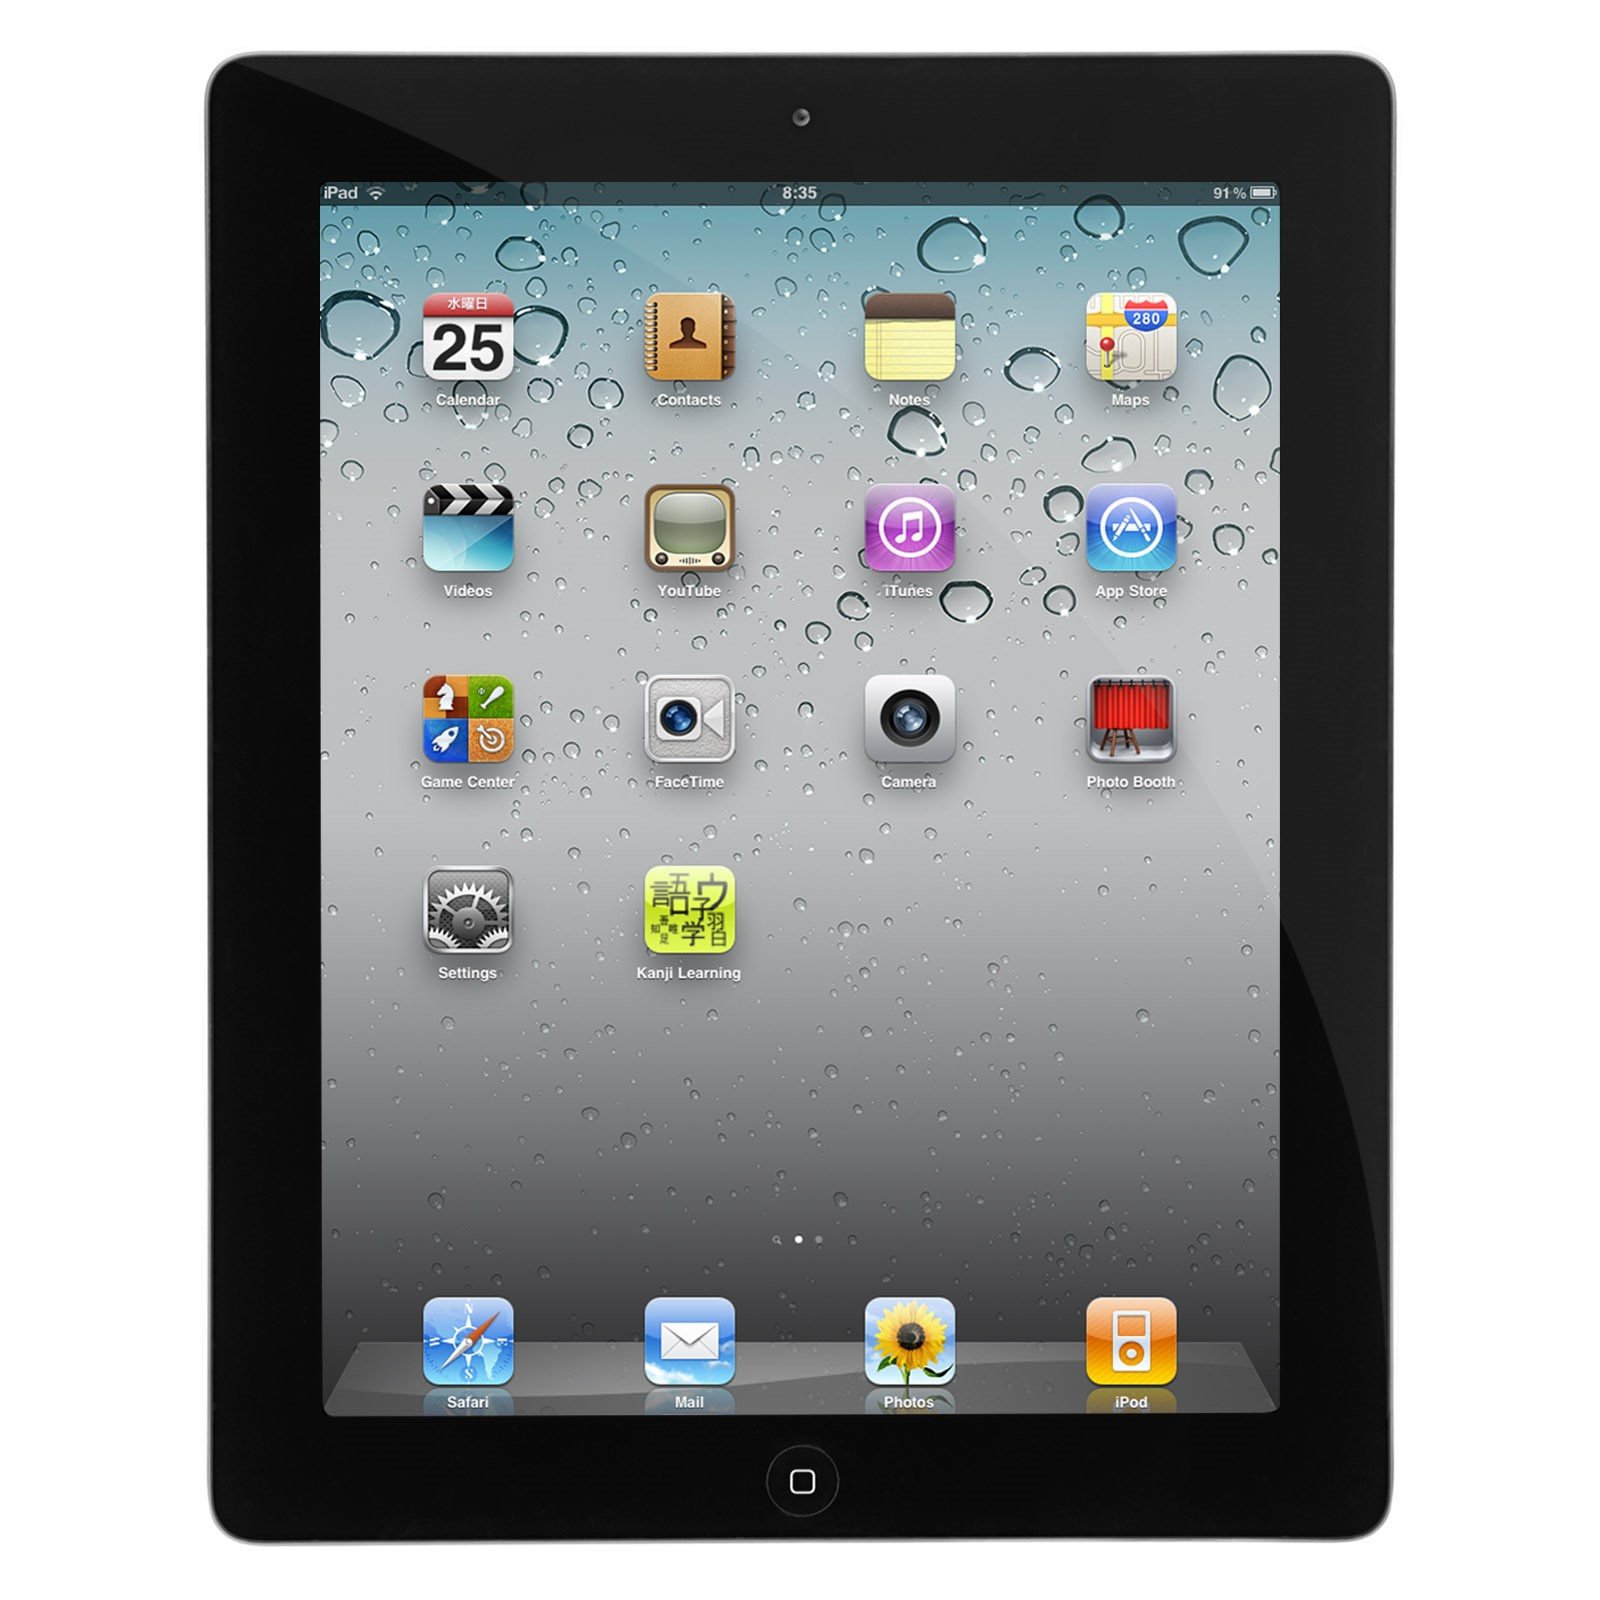 Apple iPad 2 Tablet 64GB (Black) (Certified Refurbished)